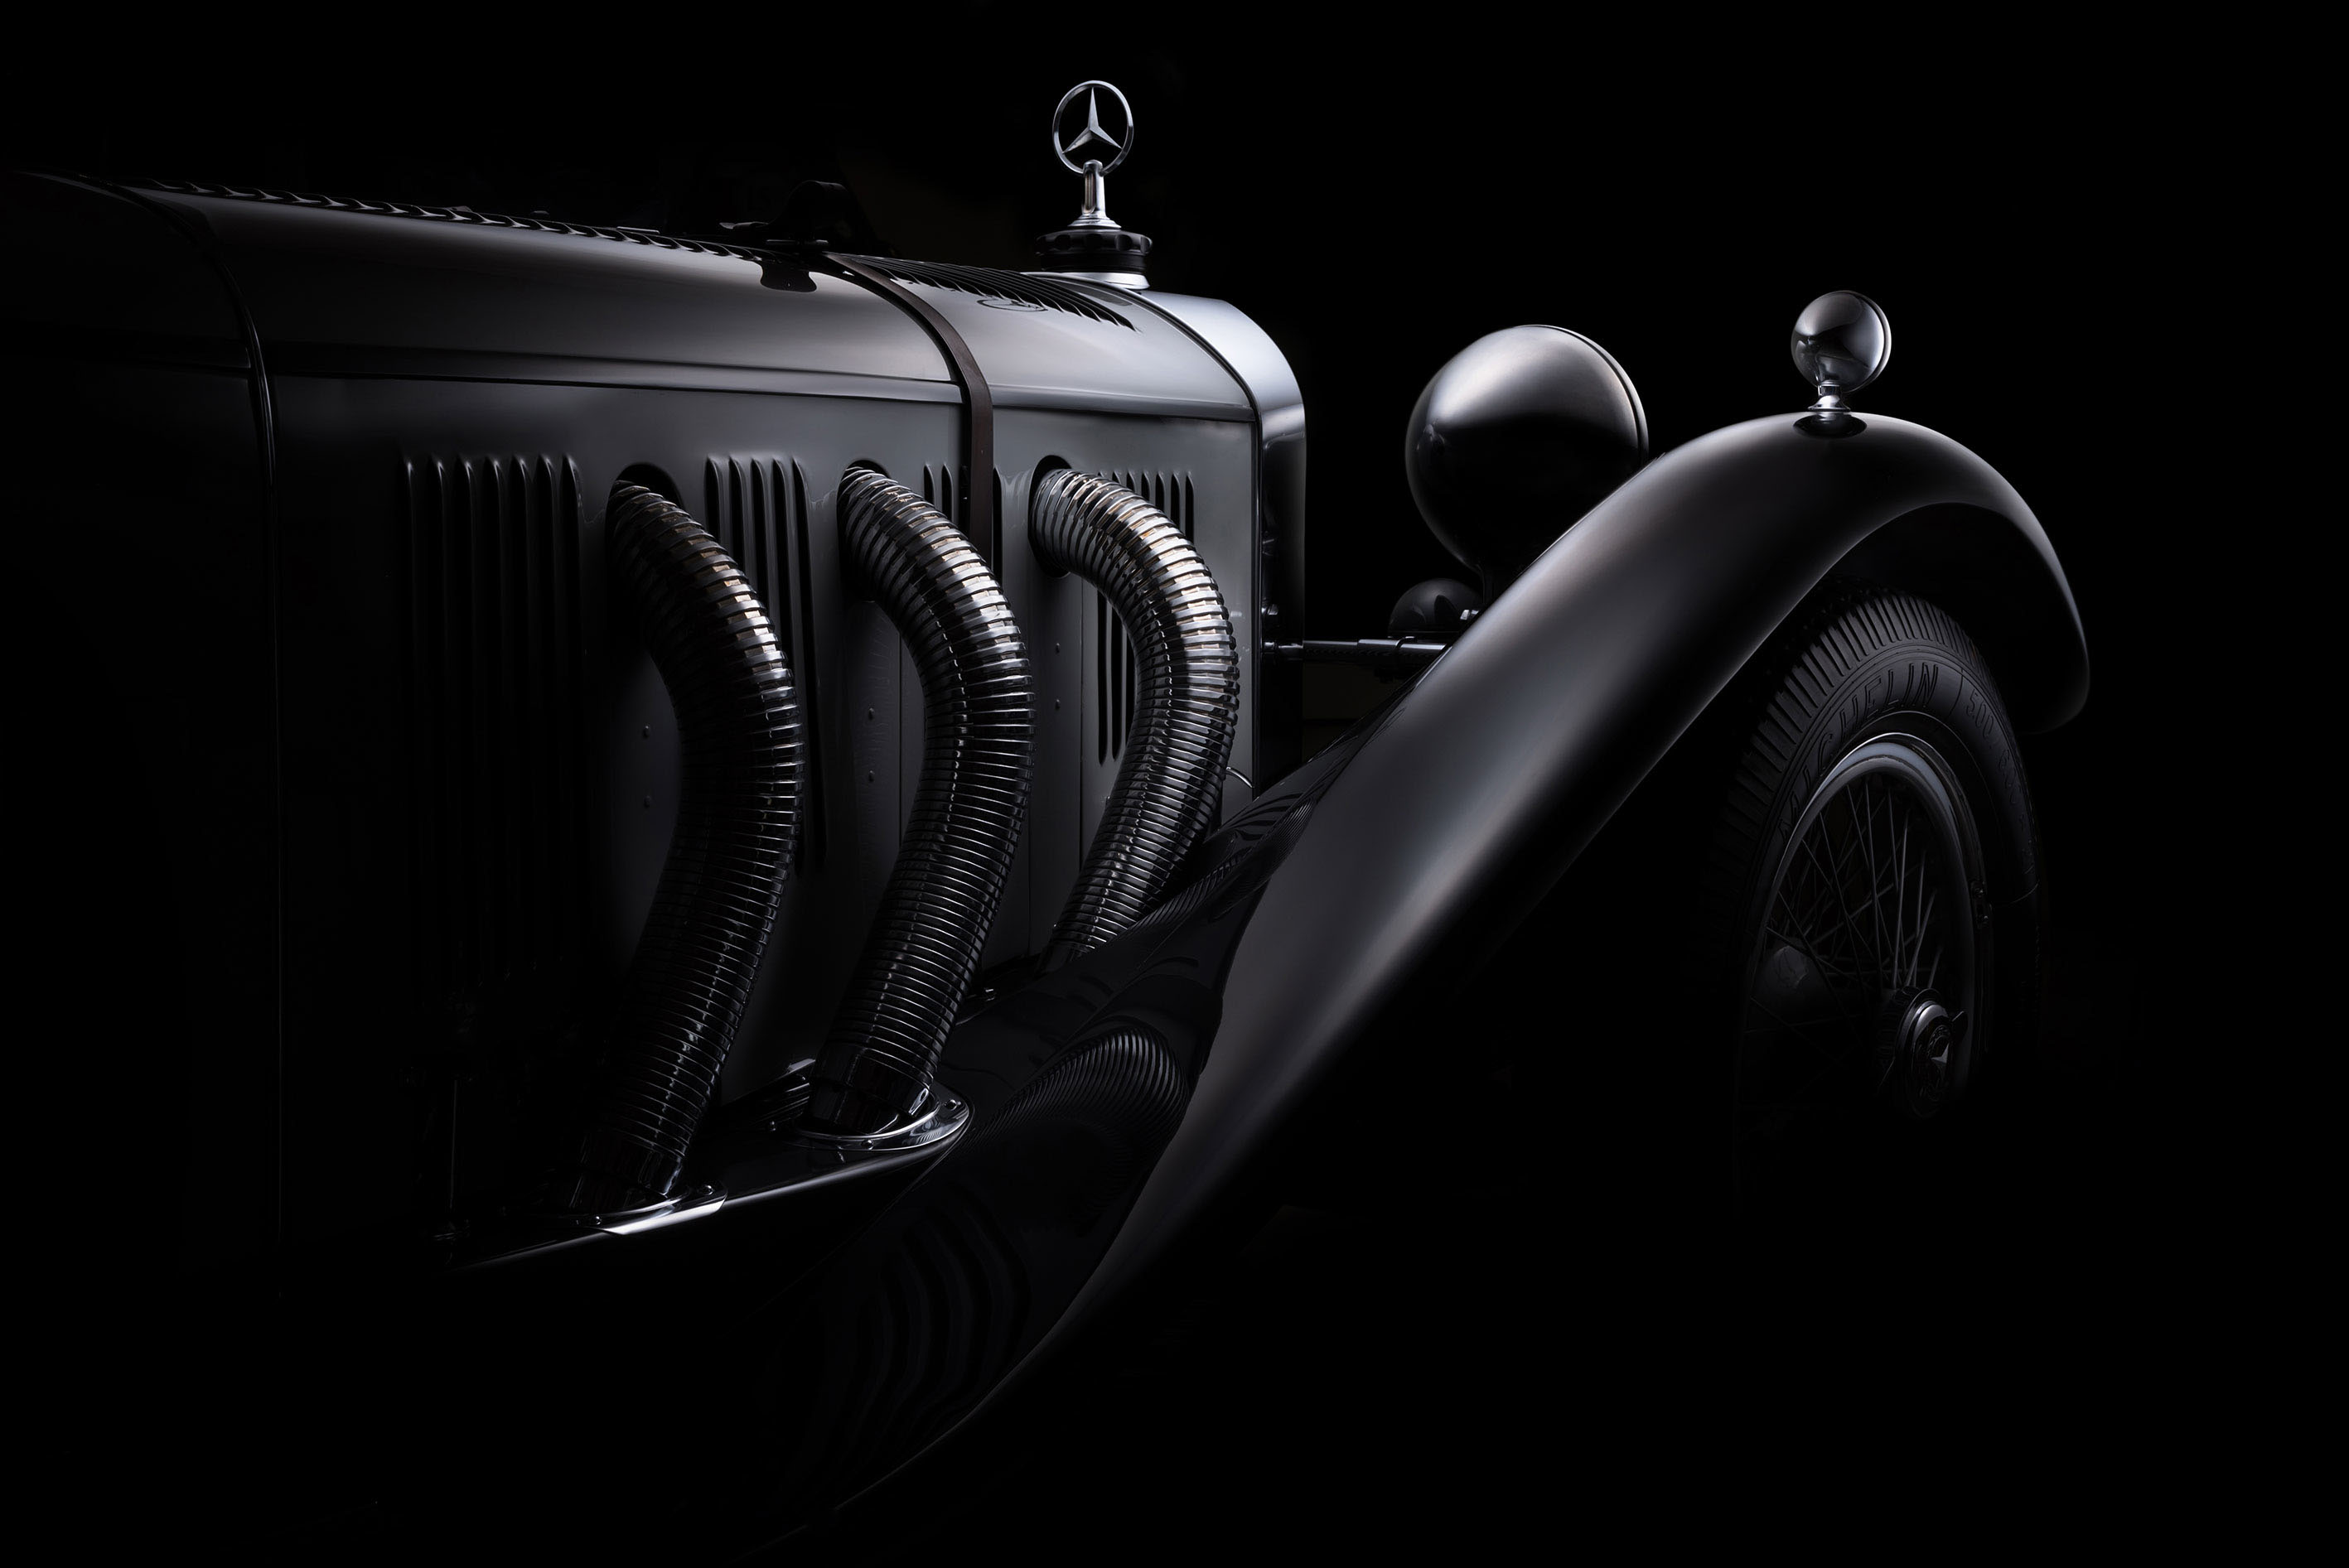 Car Photography Creating Works of Art